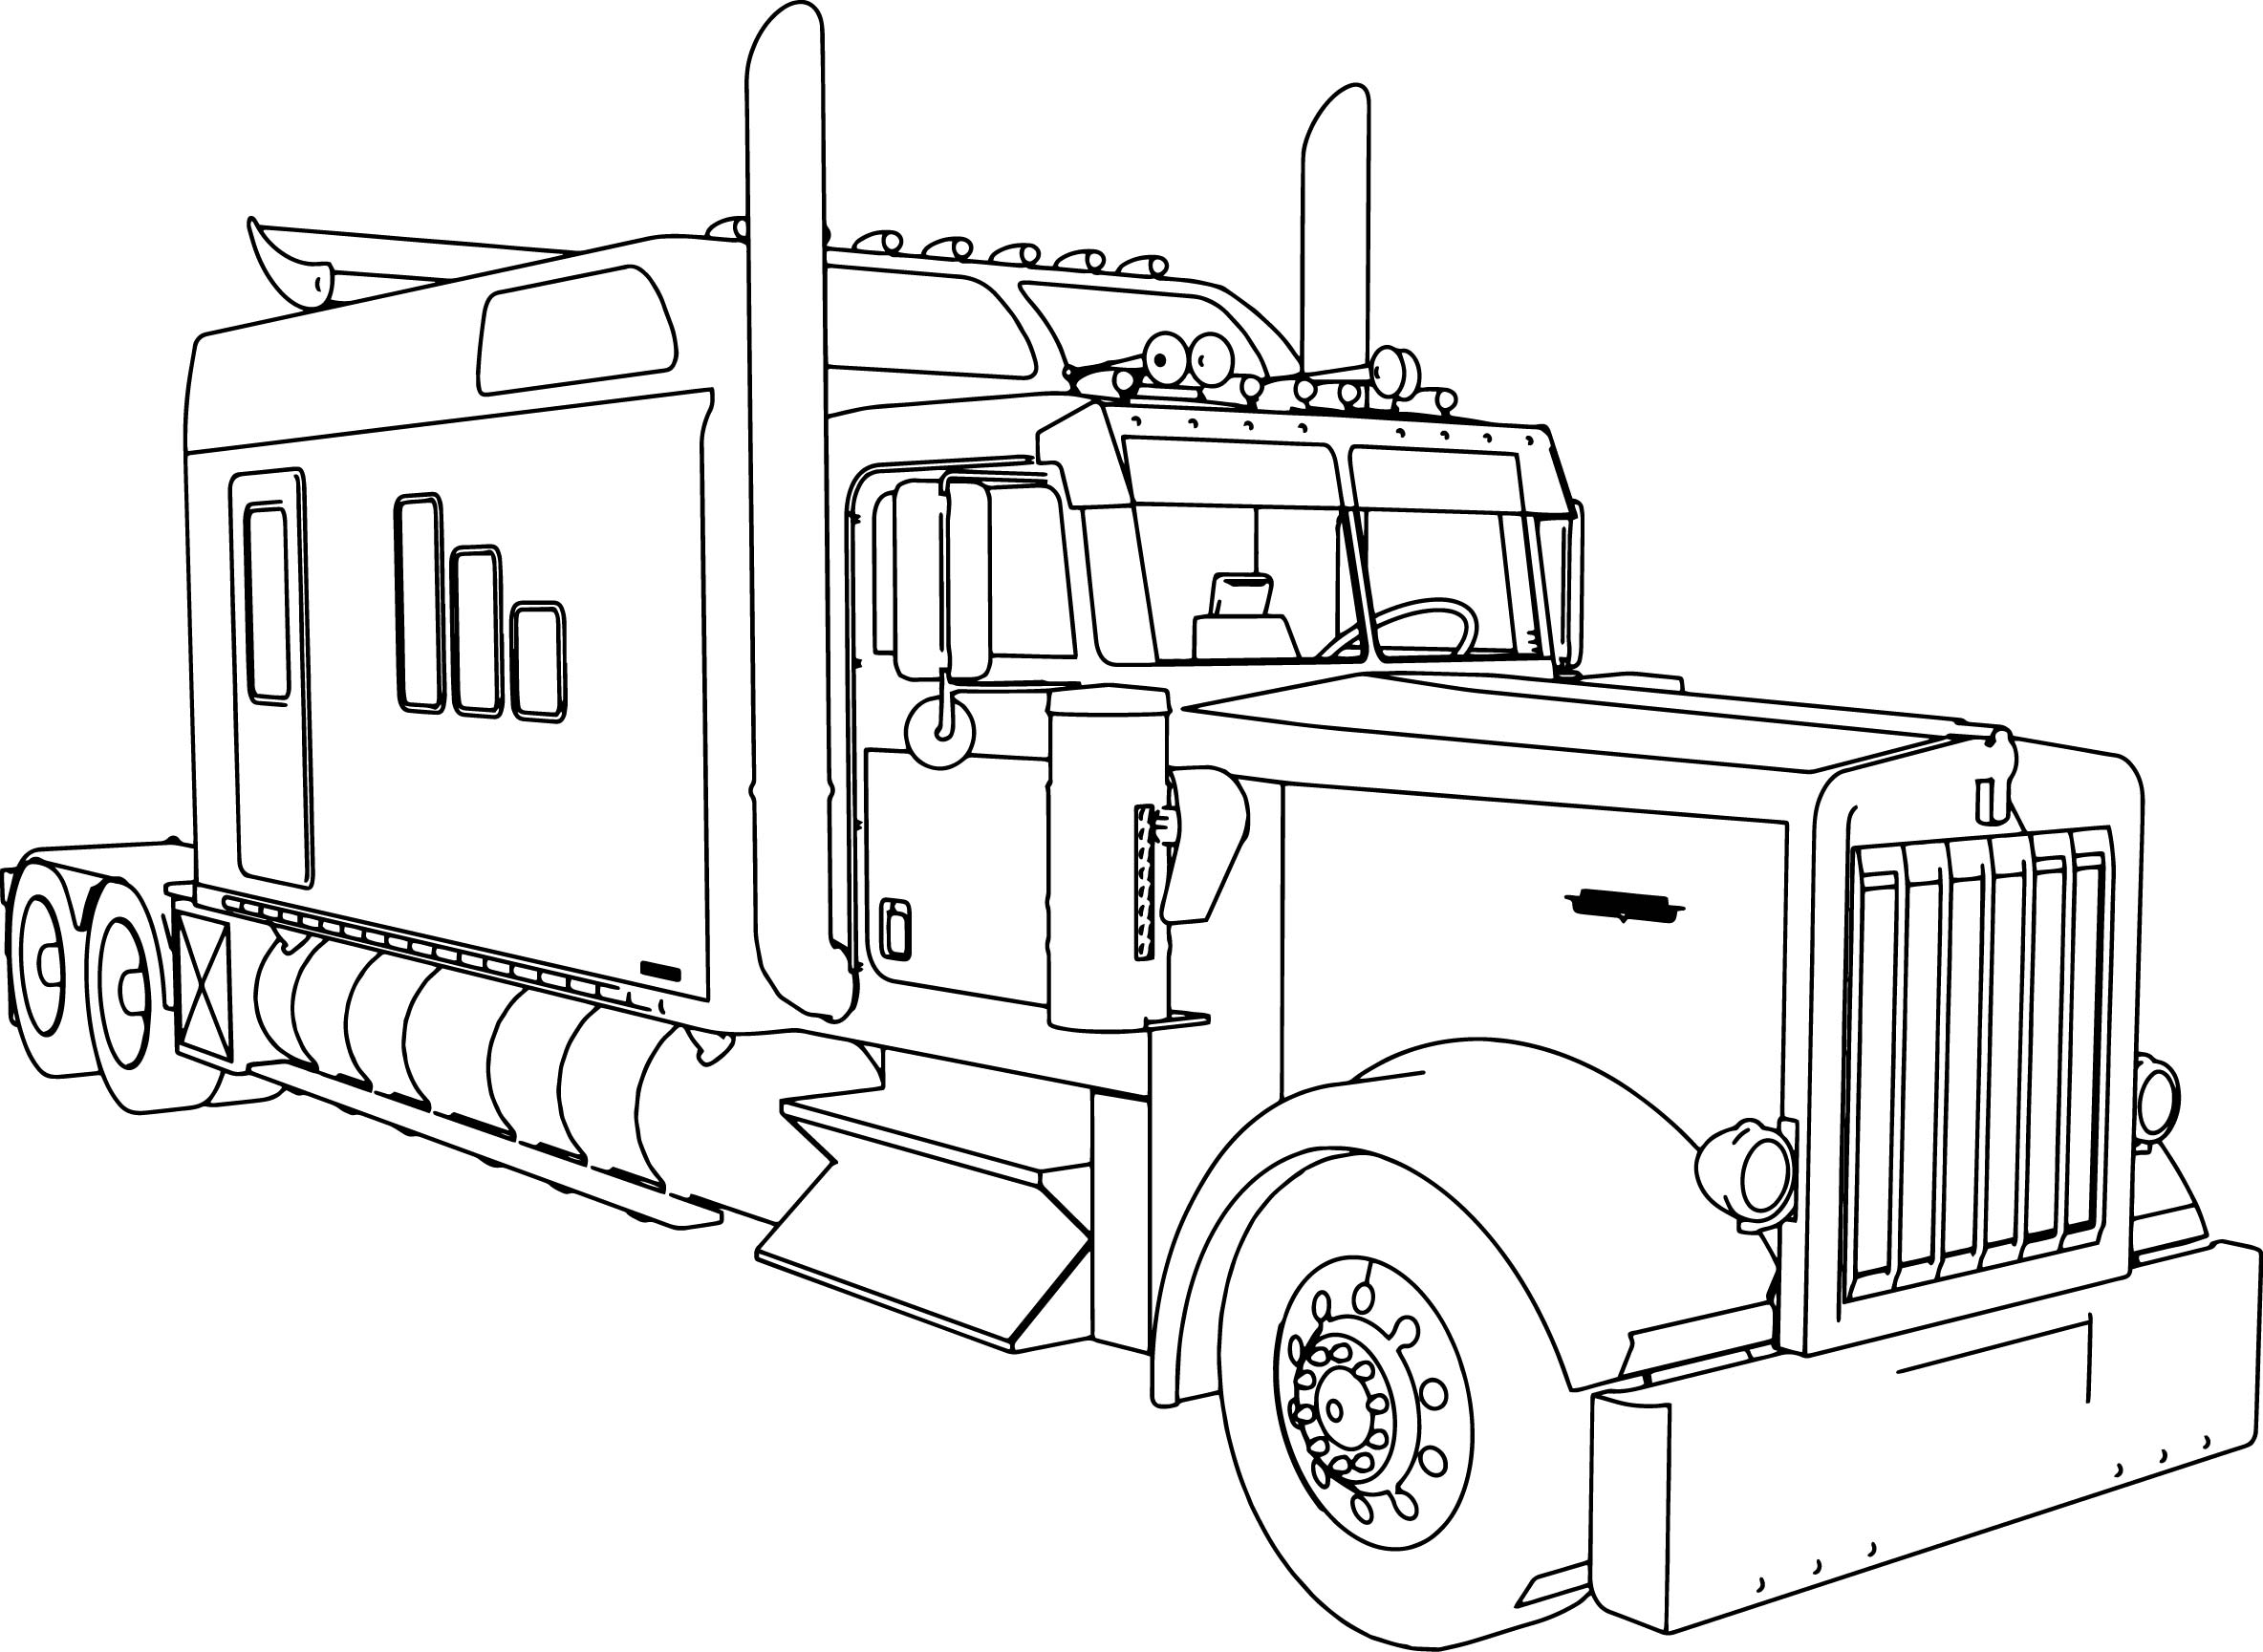 Drawing Of Kenworth T600 Related Keywords & Suggestions